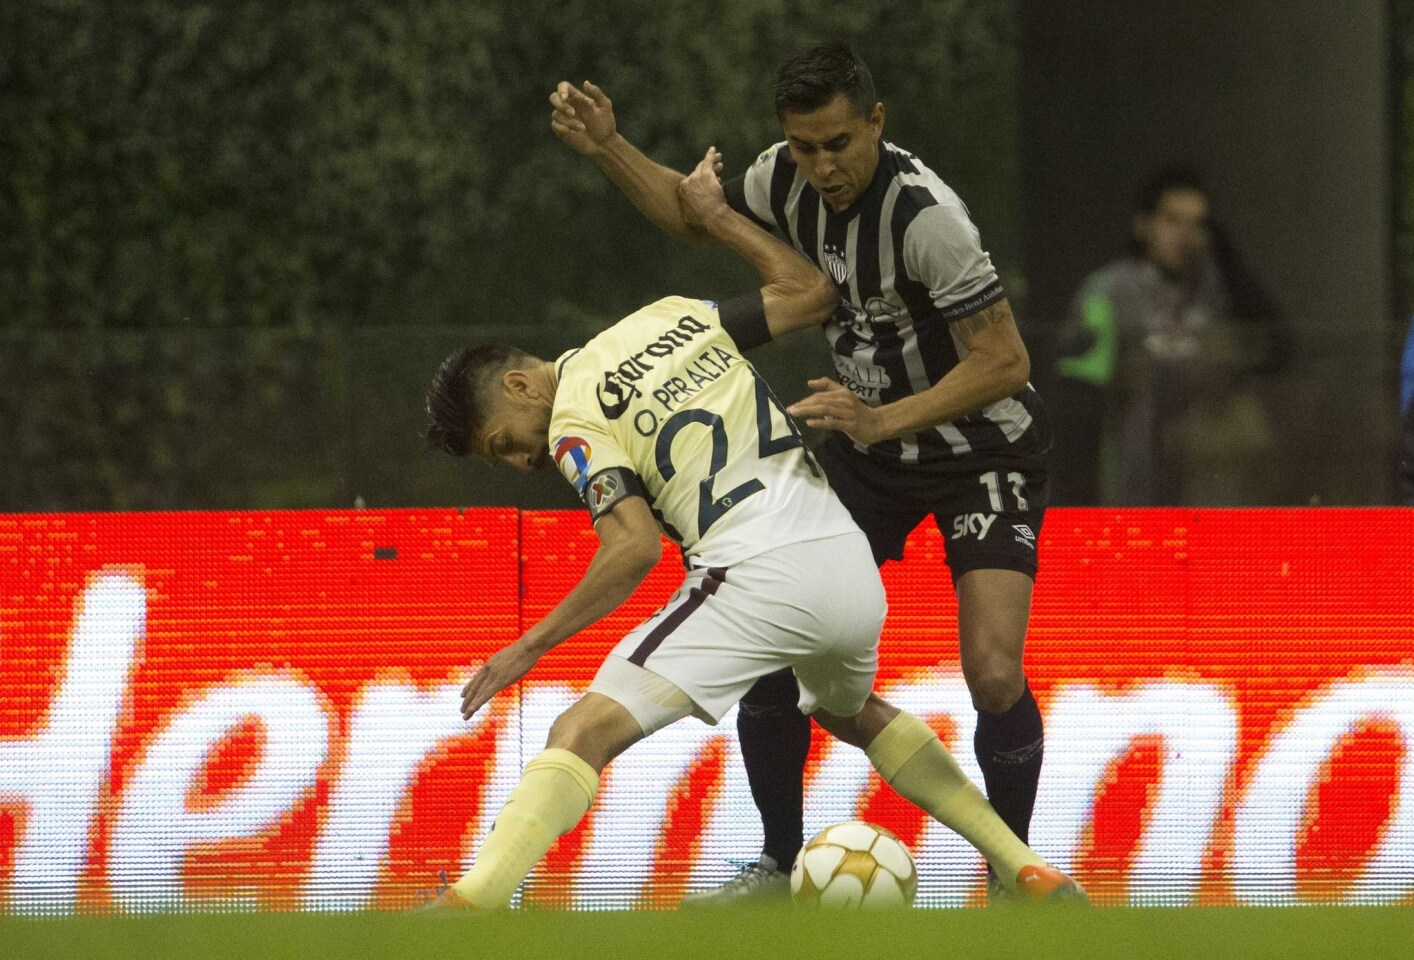 Necaxa's Jesus Isijara, right, fights for the ball with America's Oribe Peralta during a Mexico soccer league in Mexico City, Sunday, Dec. 4, 2016. (AP Photo/Christian Palma)